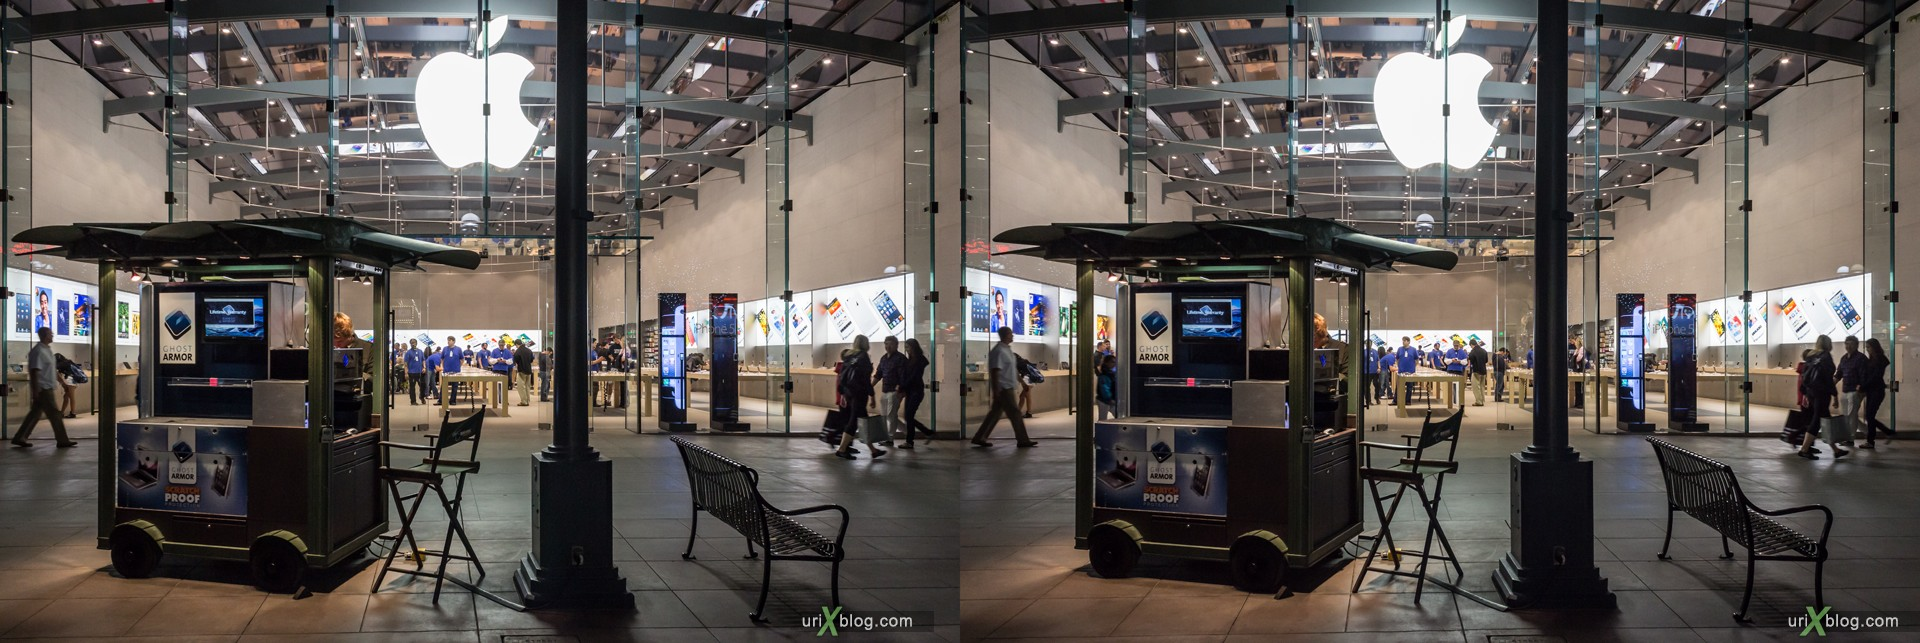 2013, Apple, Apple Store, 1415 3rd Street Promenade, Santa Monica, Los Angeles, LA, USA, 3D, stereo pair, cross-eyed, crossview, cross view stereo pair, stereoscopic